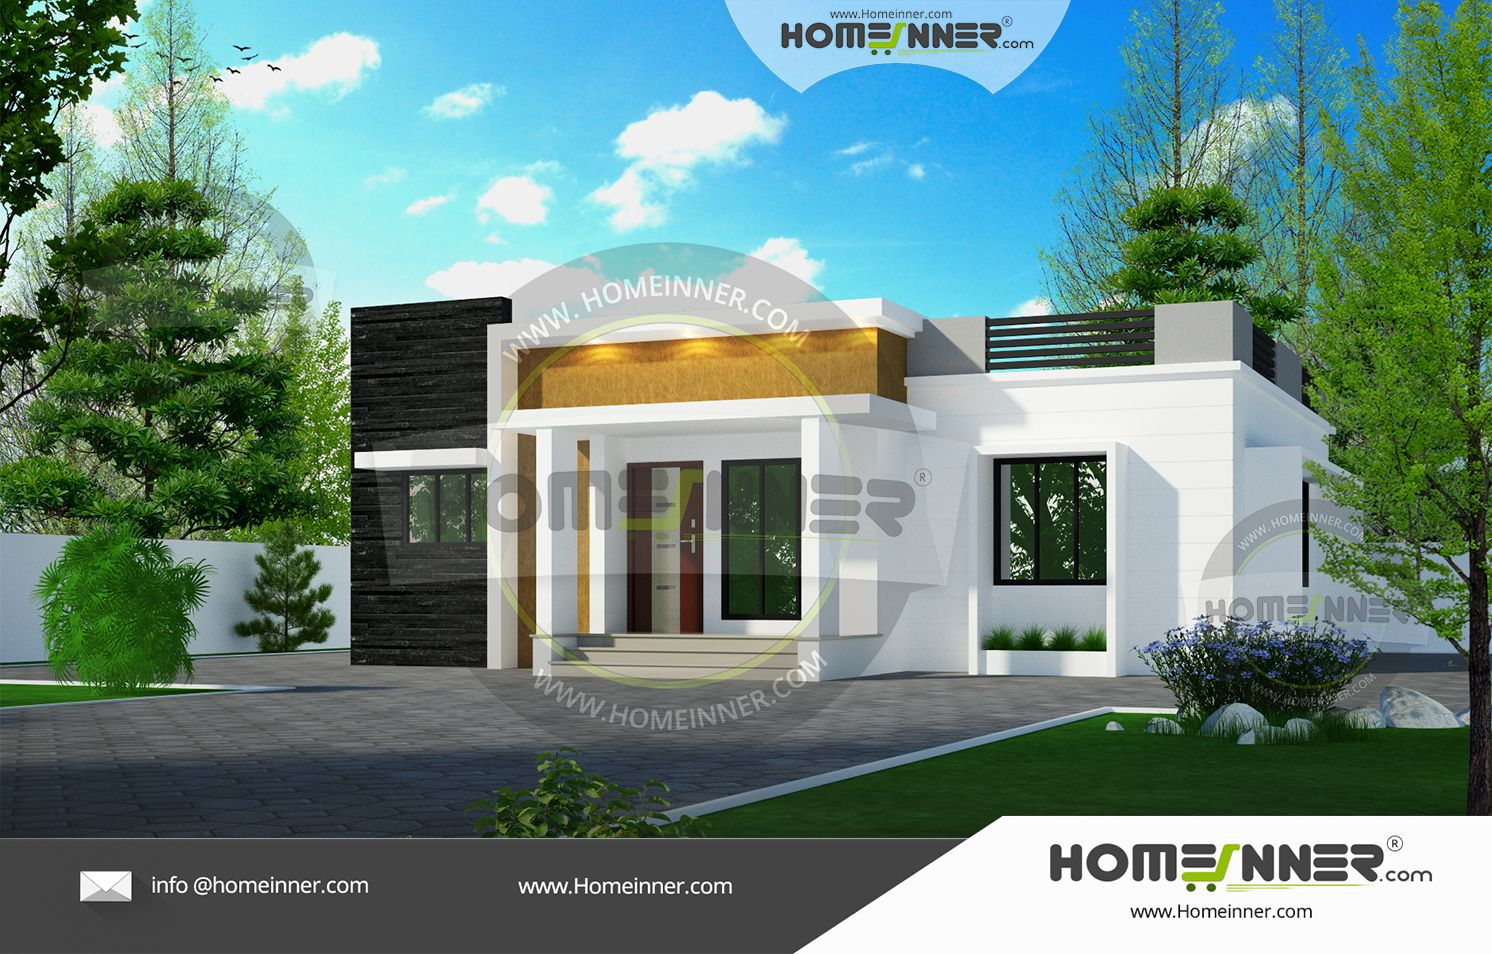 1000 Sq Ft House Plans 3 Bedroom Kerala Style 1000 Sq Ft House Kerala House Design House Plans